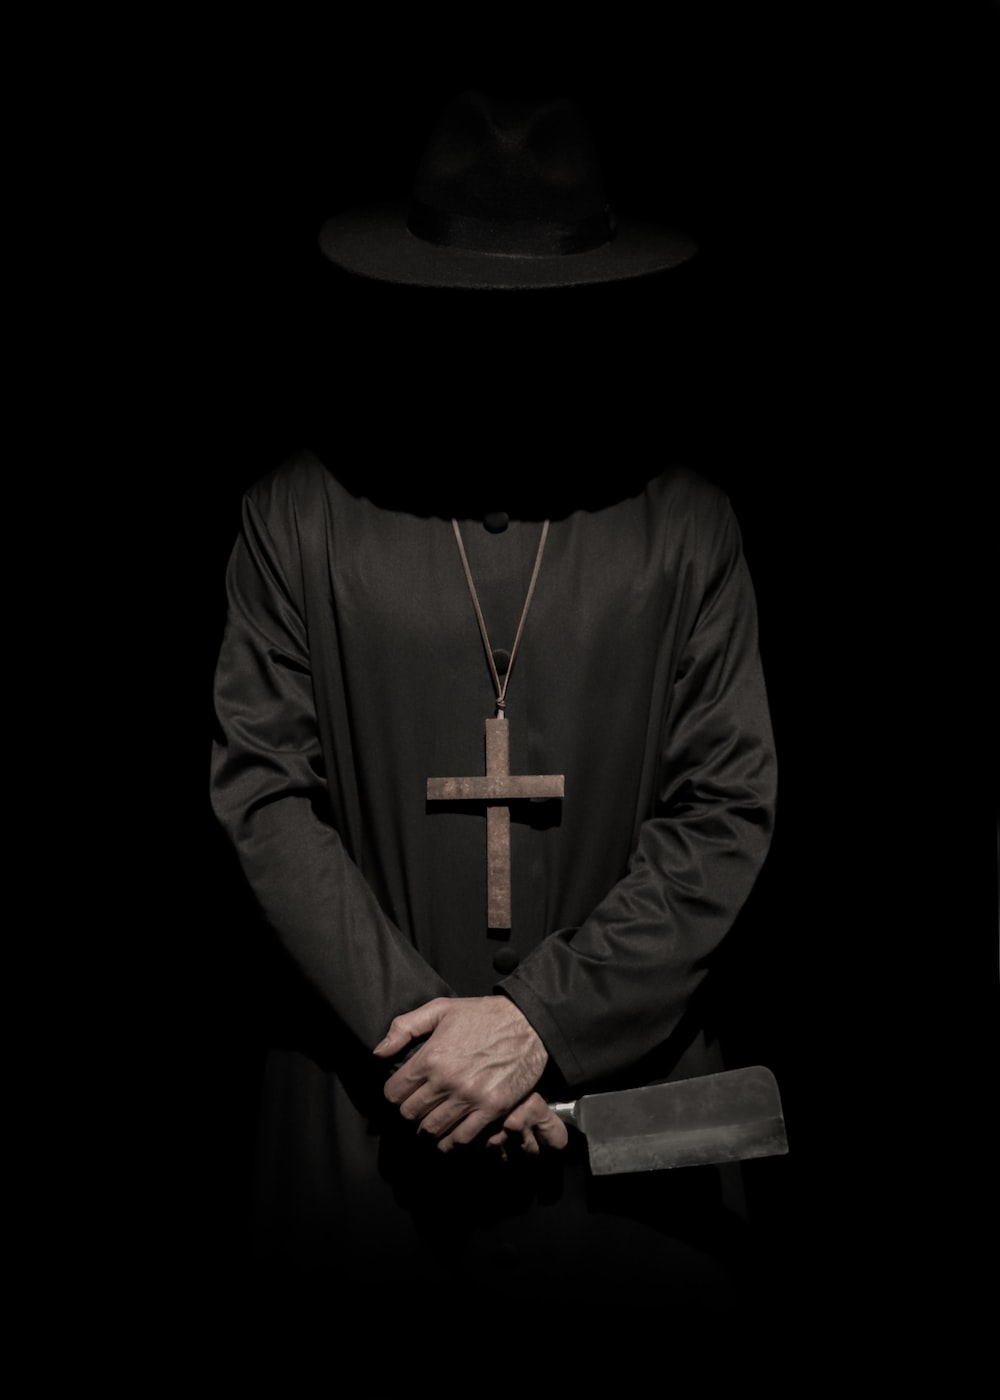 standing person wearing hat and cross necklace holding cleaver